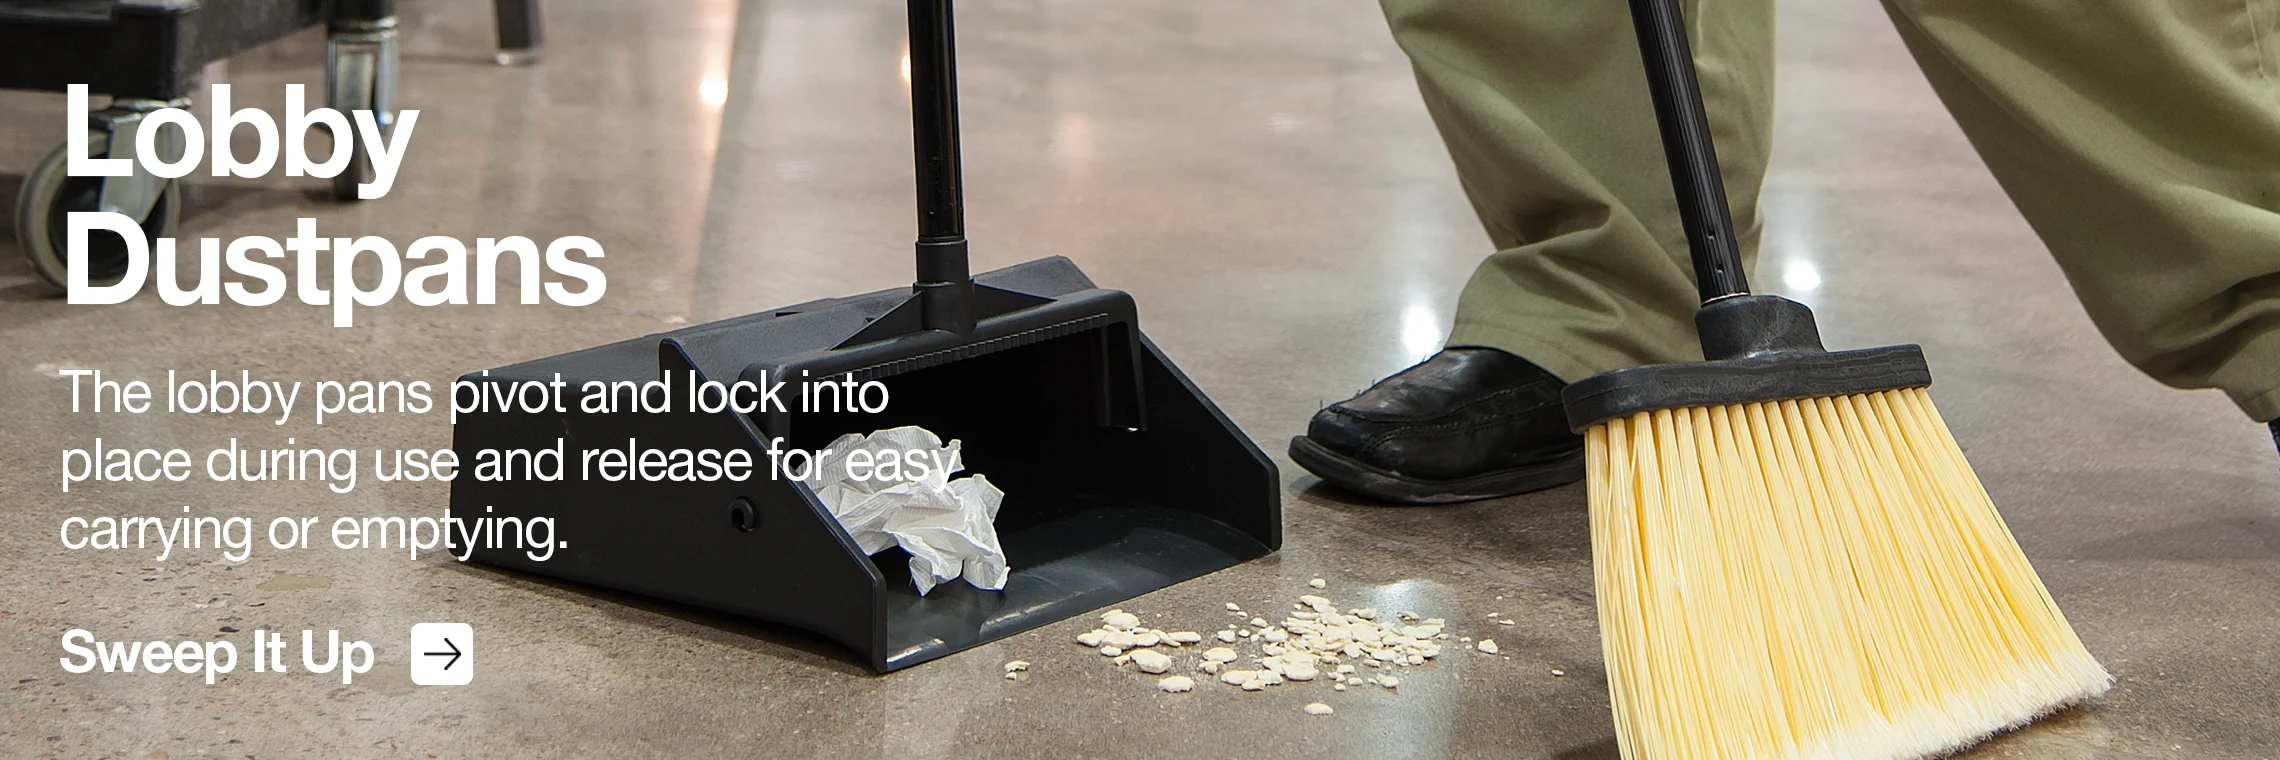 Sanitary Maintenance - Lobby Dustpans